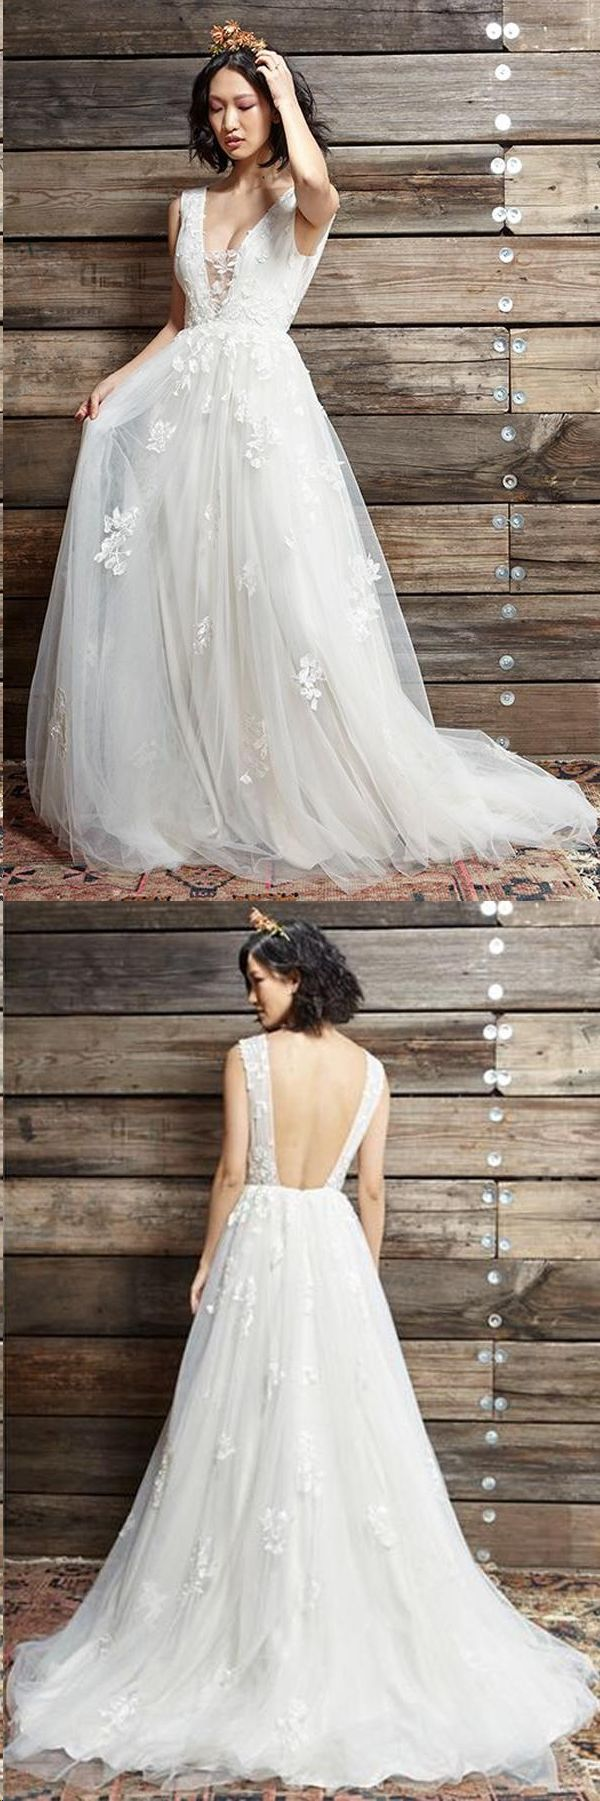 Open Back Wedding Dresses Straps A Line Chic Cheap Appliques Backless Bridal Gown JKW309 – Prom Dresses